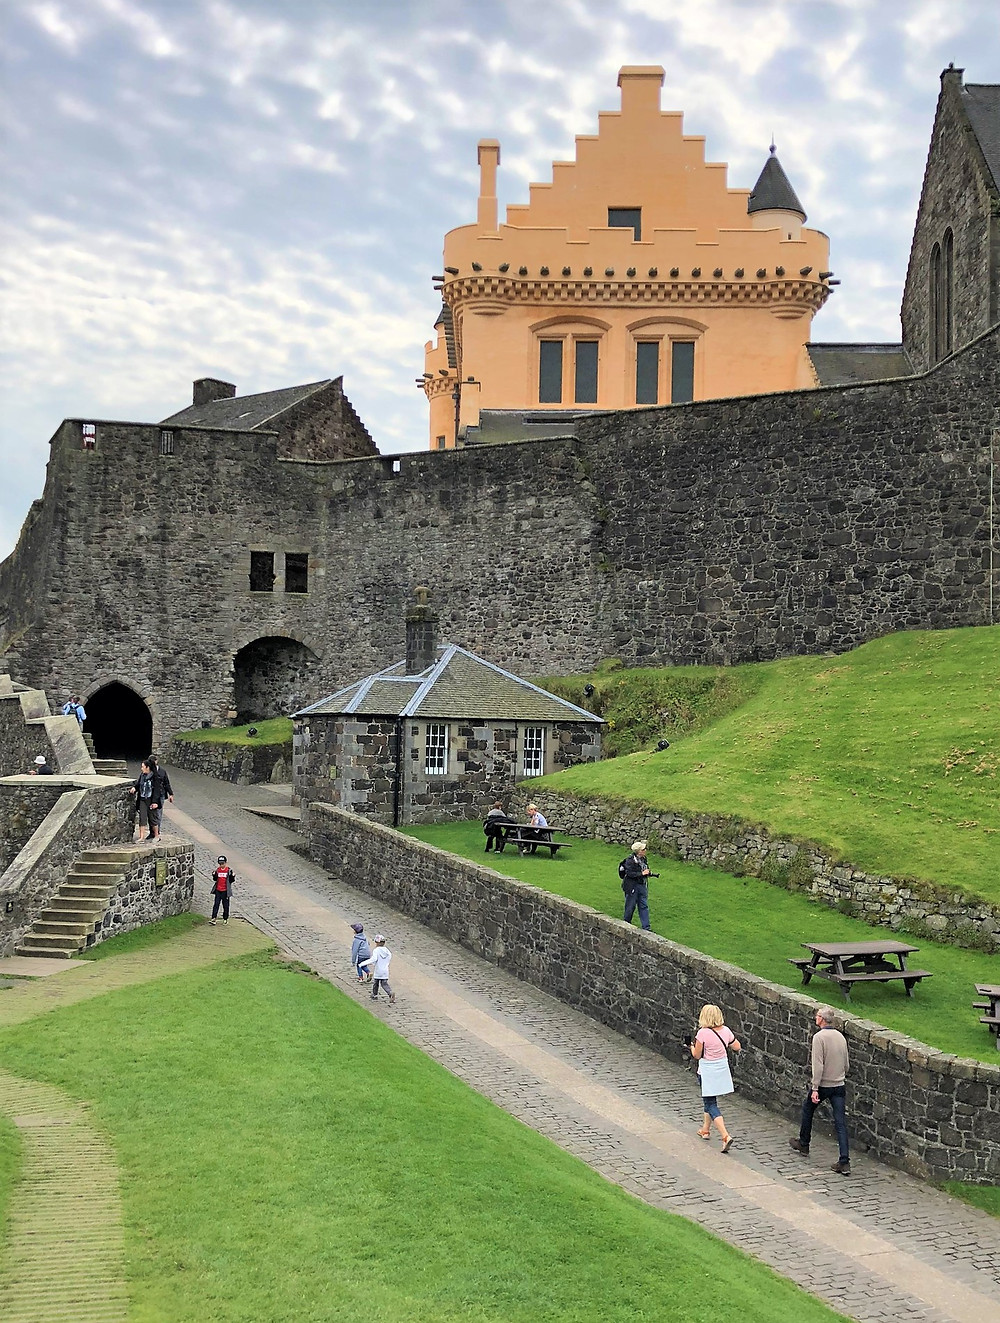 Stirling Castle North Gate was built around 1381 with the gold-colored Great Hall in the background